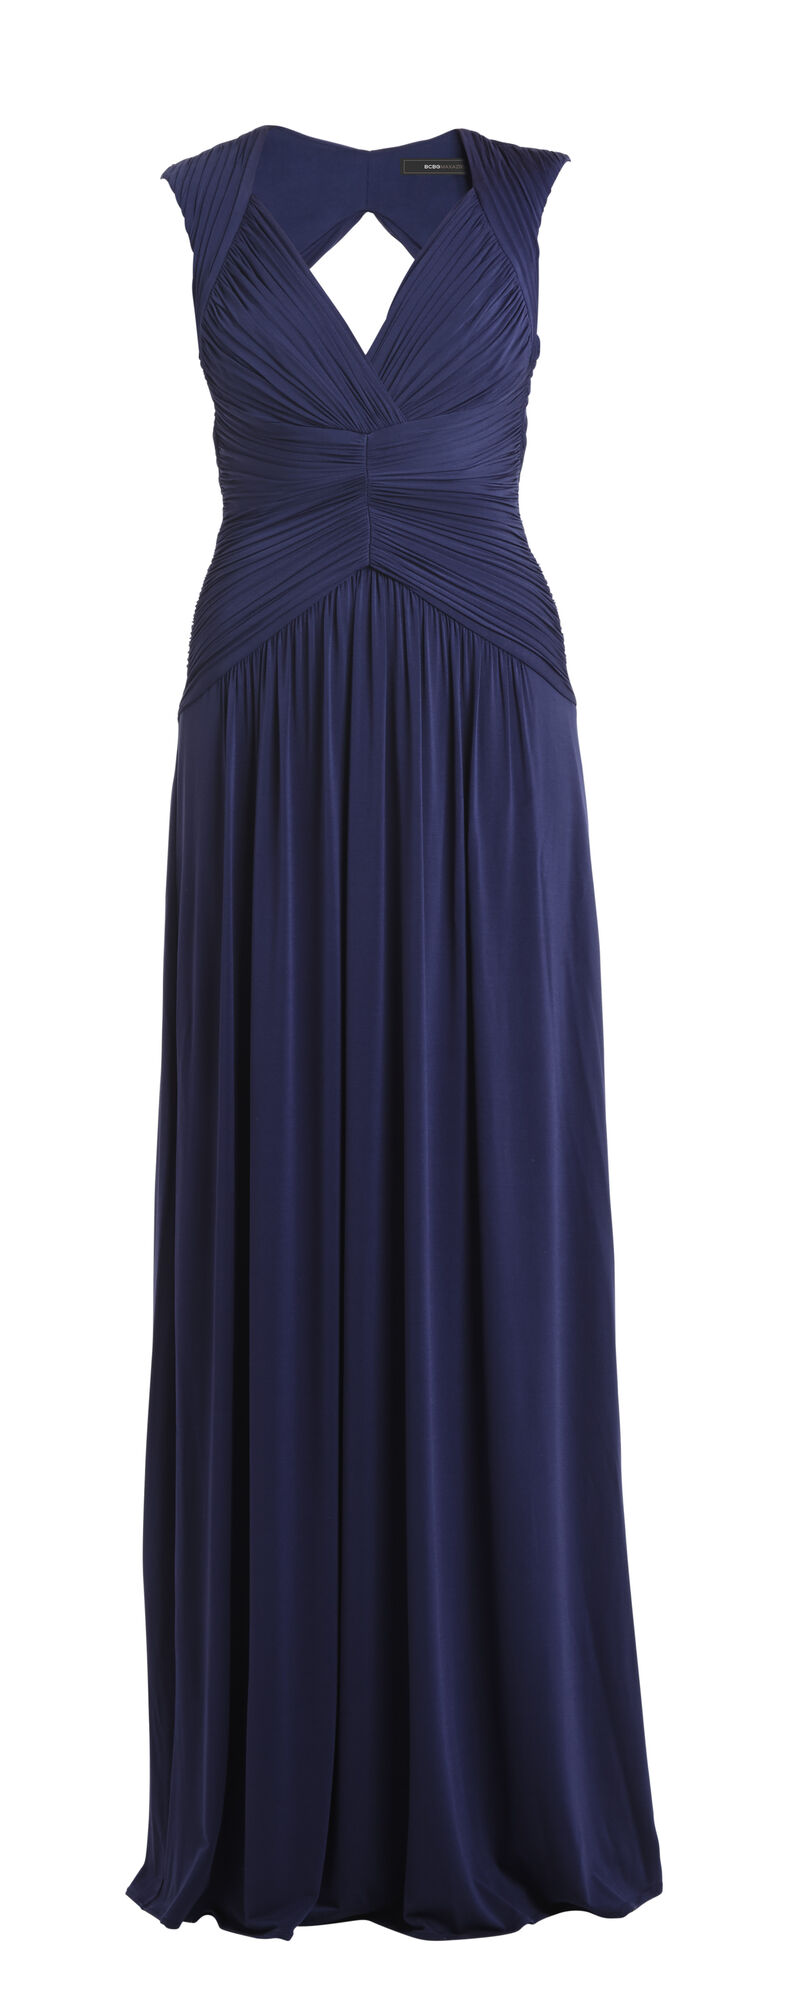 Sophia Sleeveless Long Dress